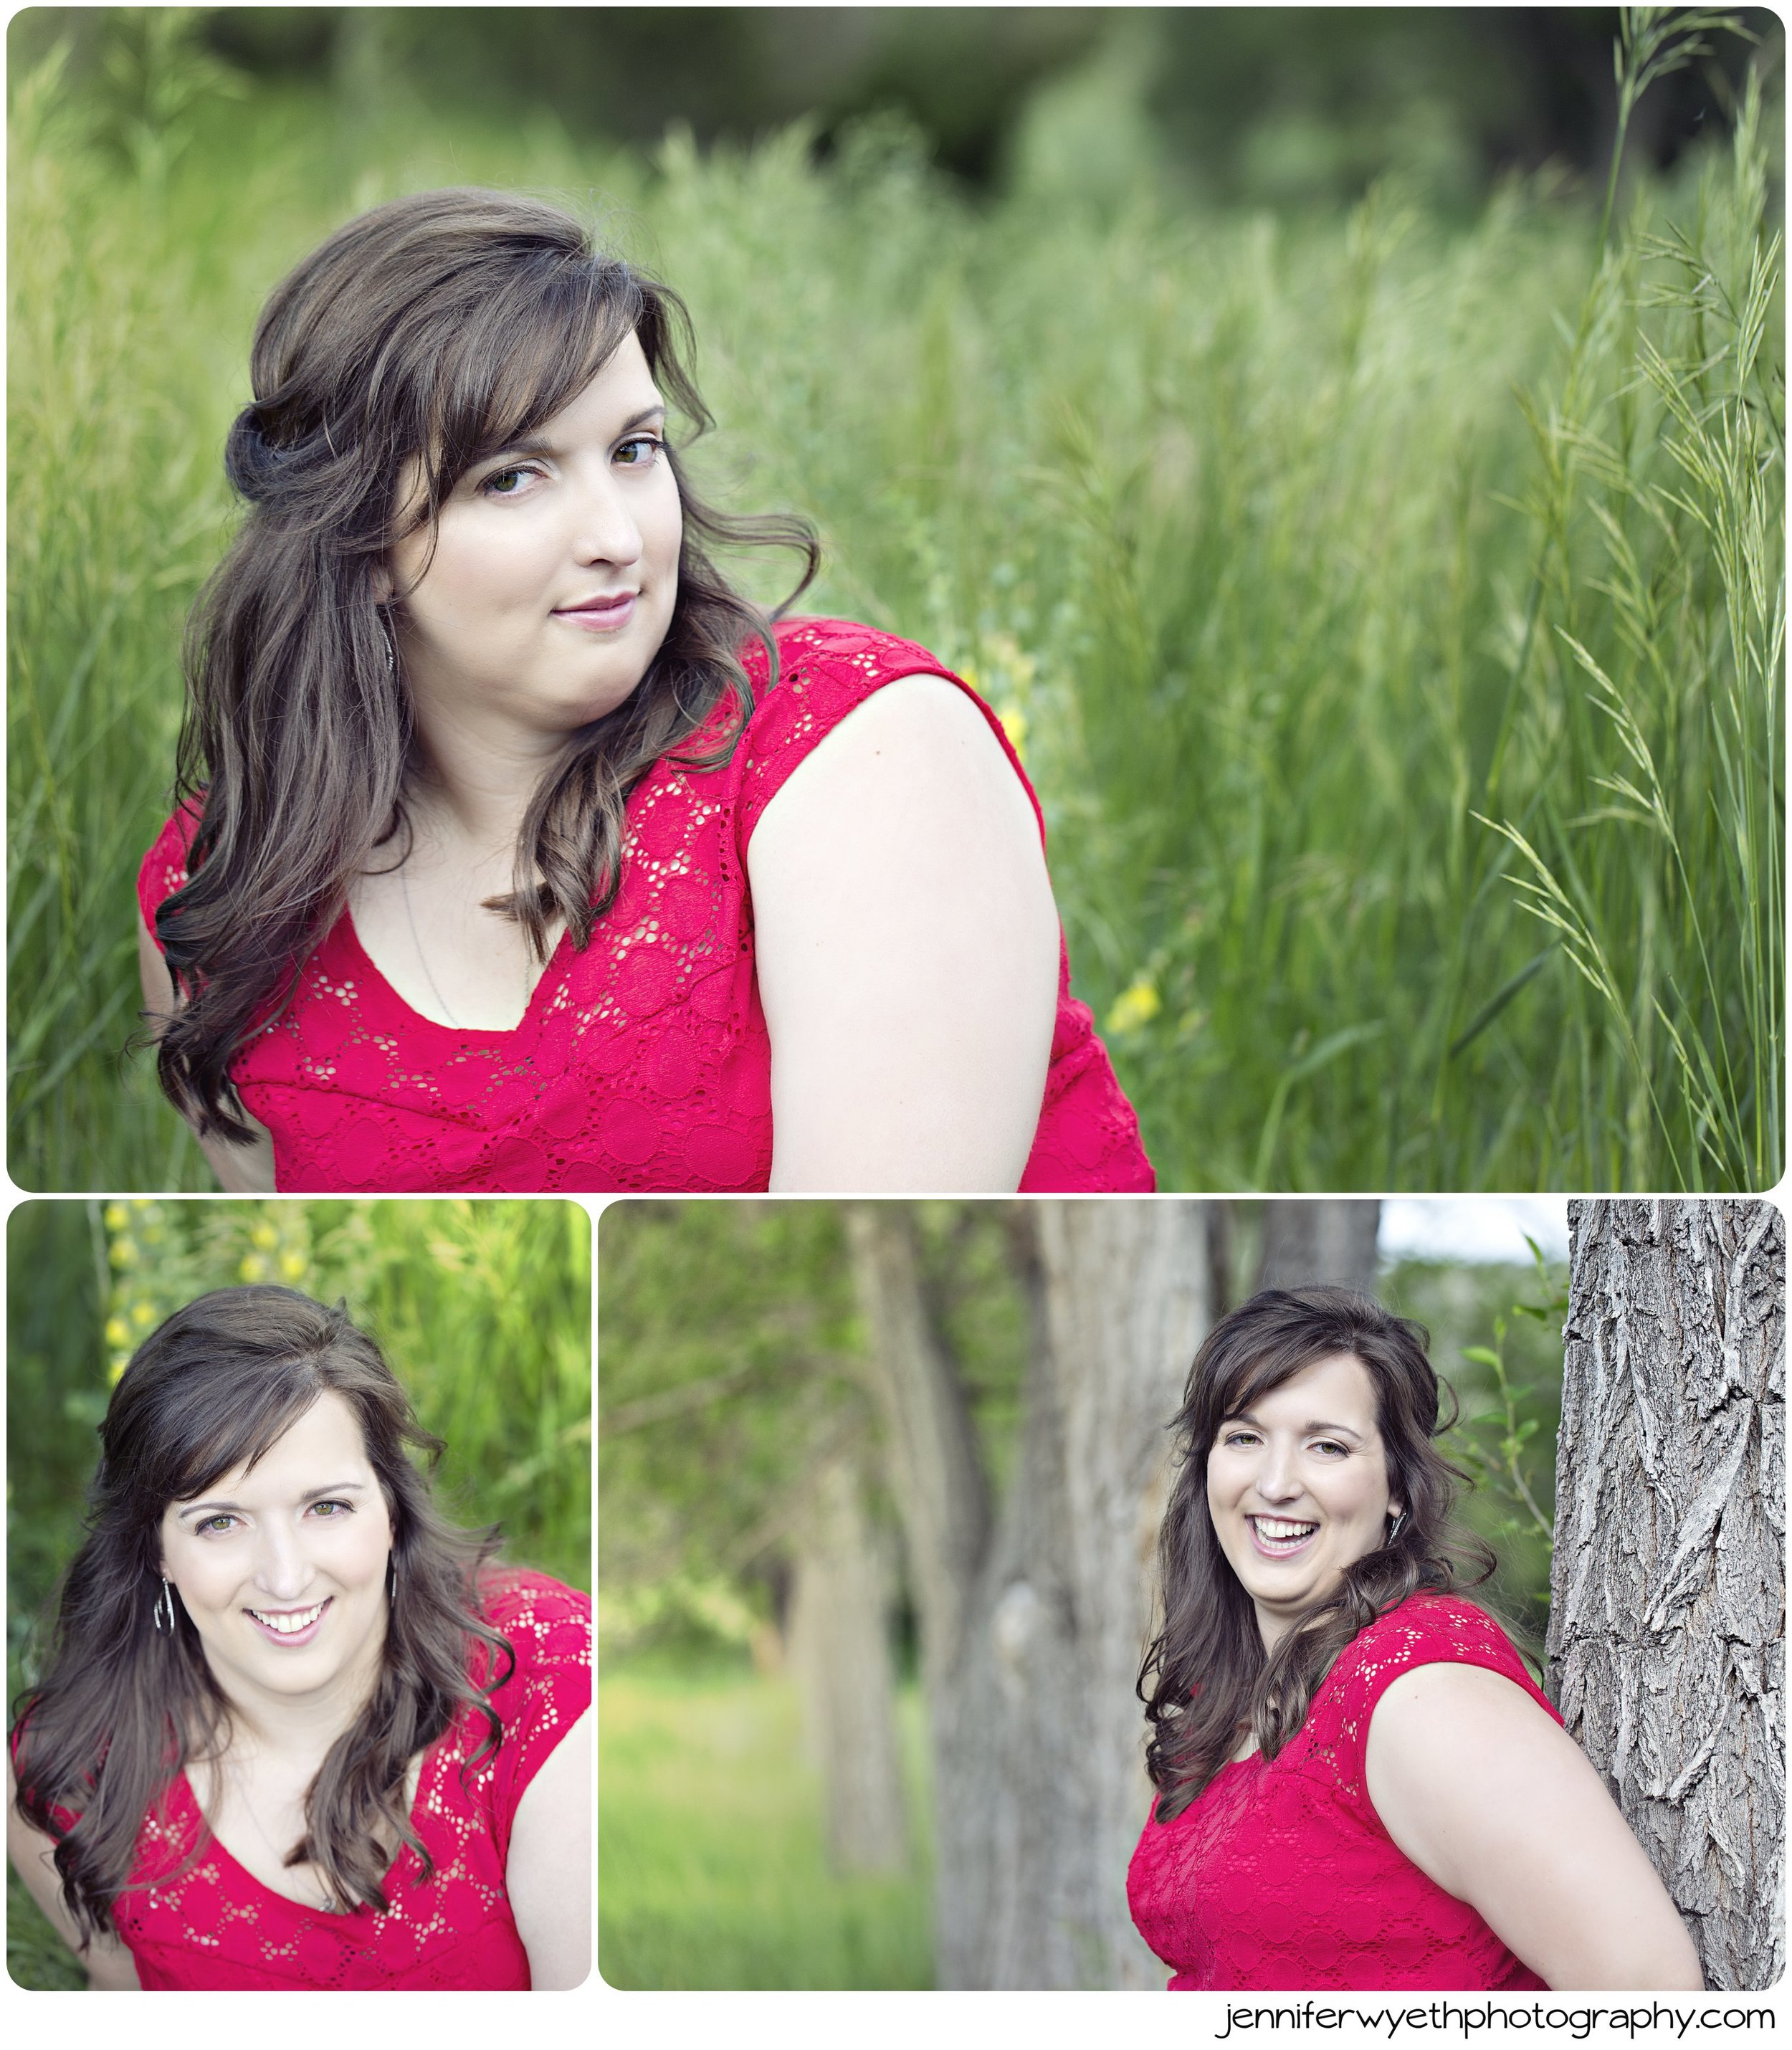 Leaning against a tree a brunette smiles in a red shirt